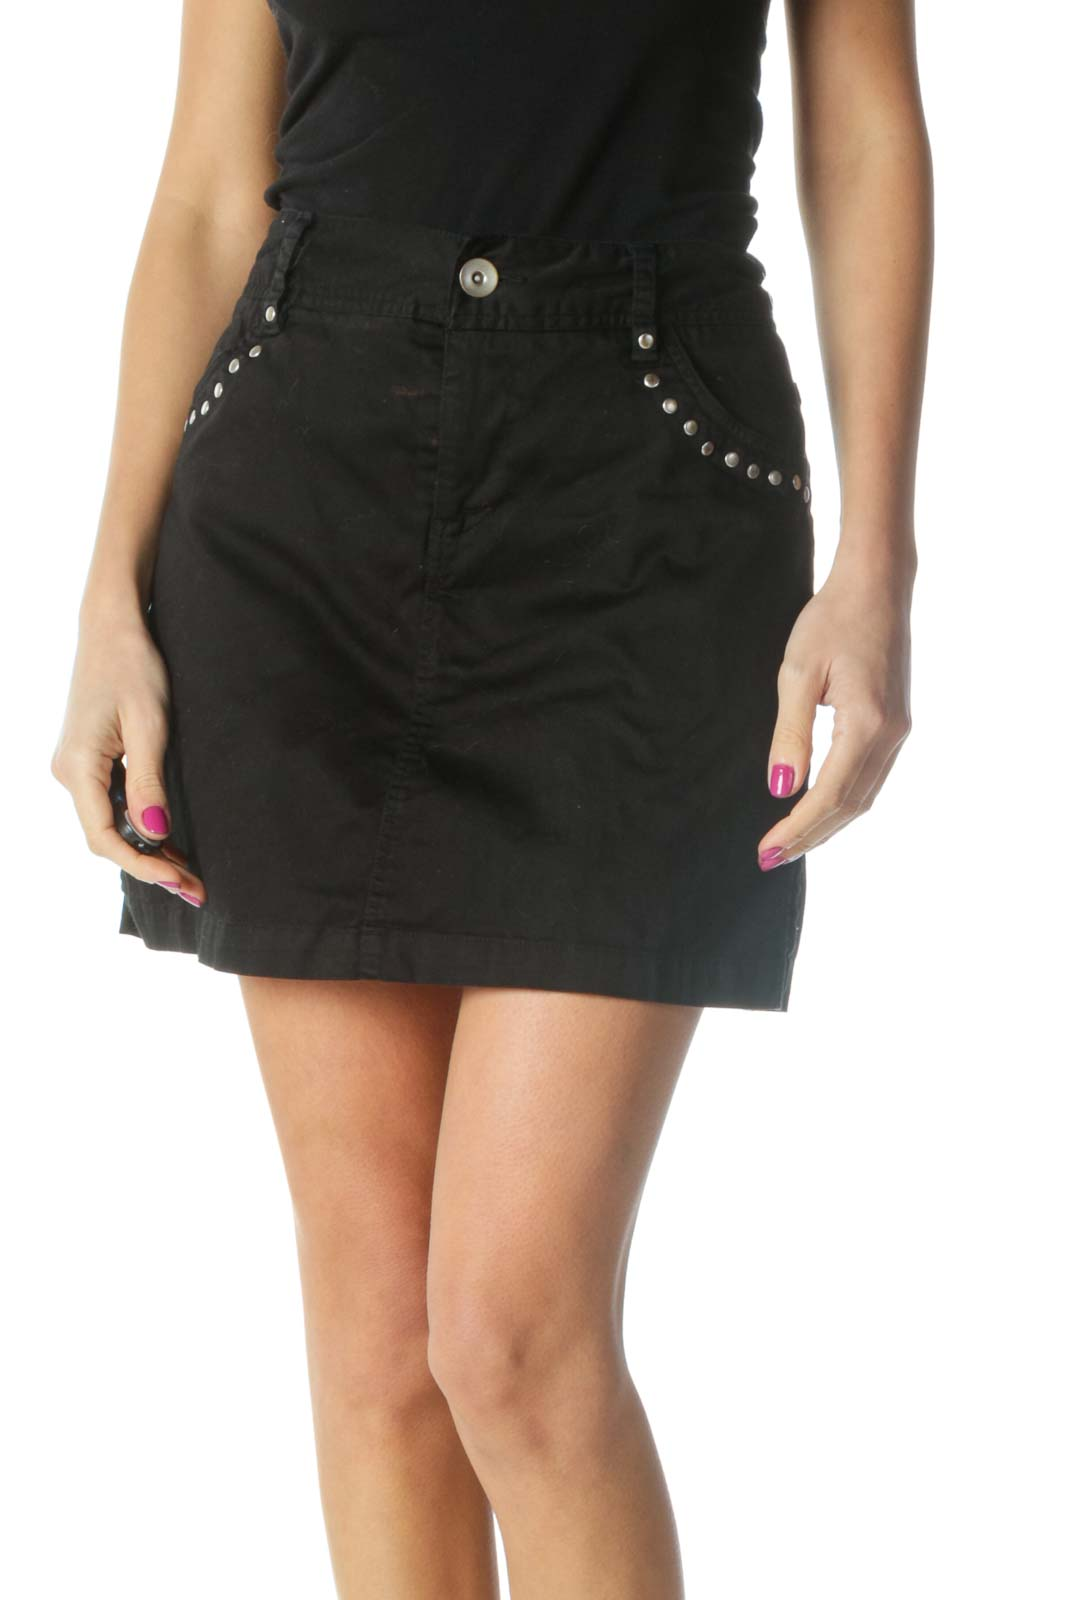 Black Solid Chic Mini Skirt Front